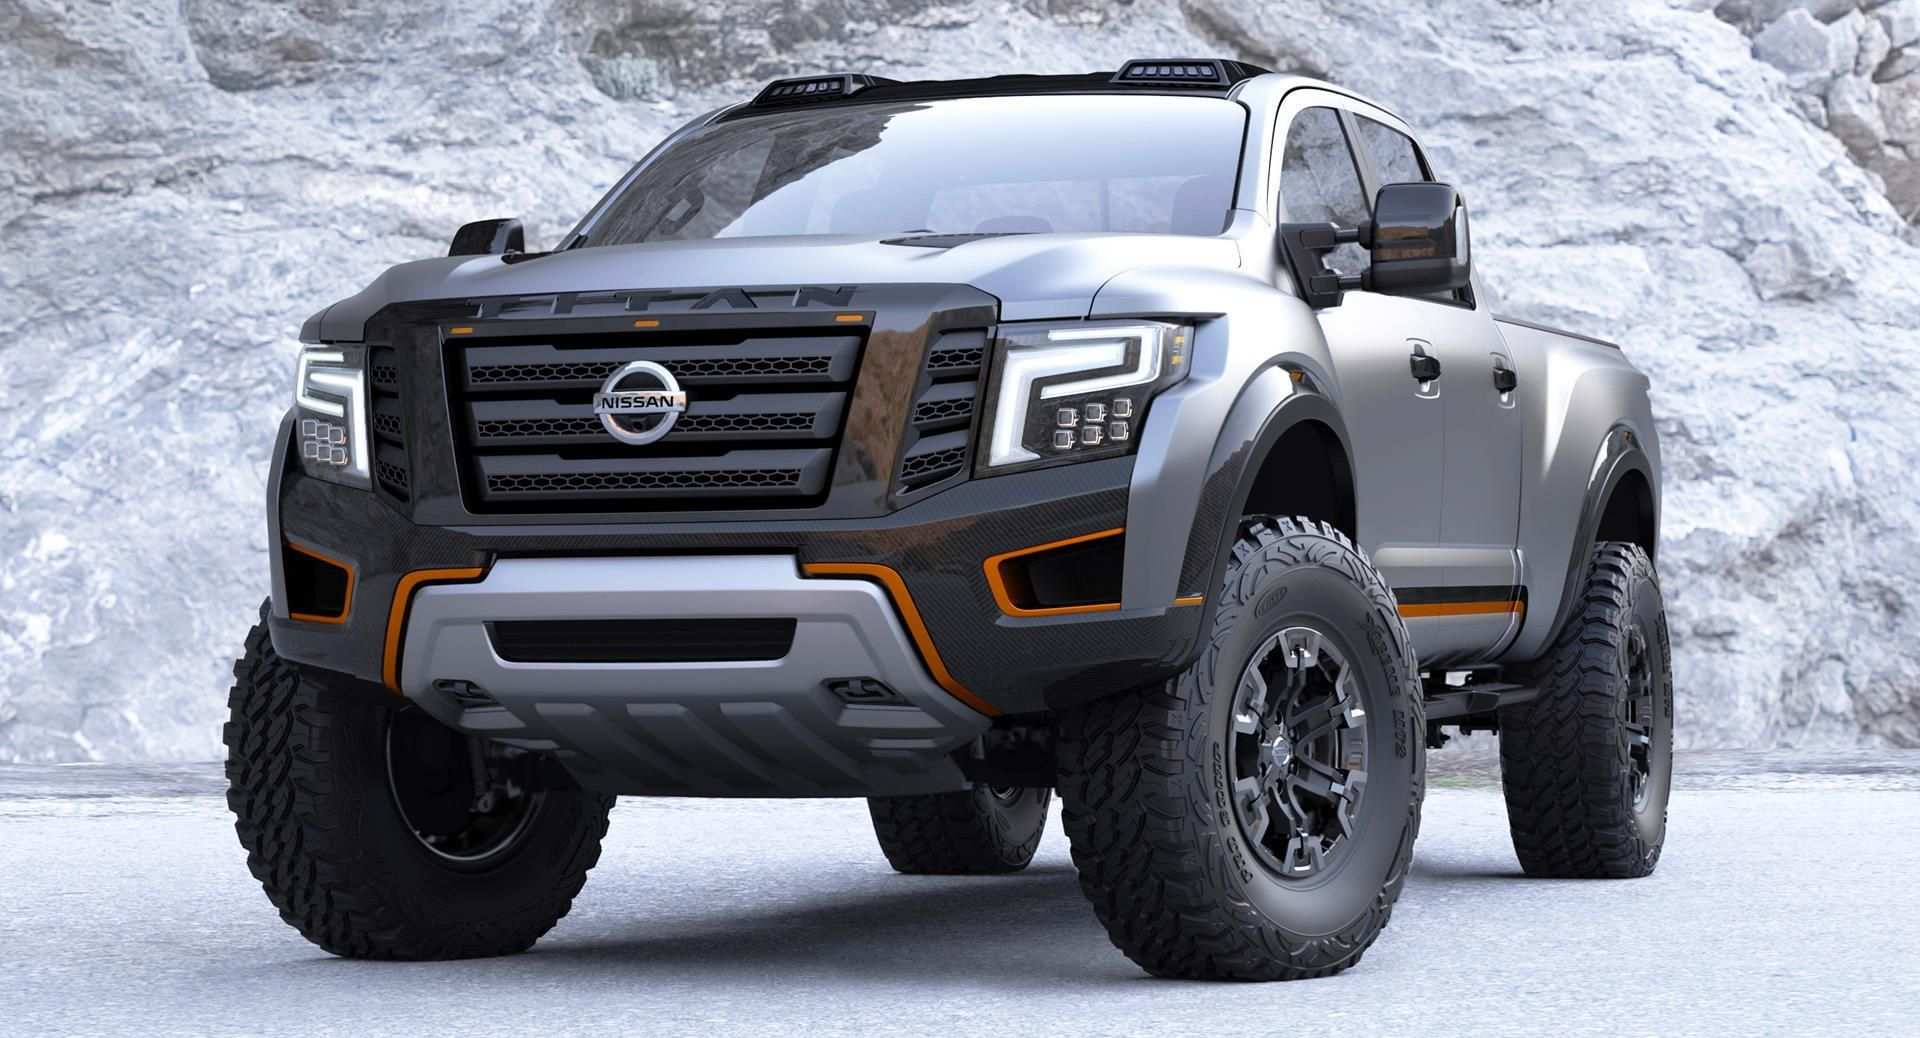 69 The Nissan Titan Xd 2020 Redesign and Concept for Nissan Titan Xd 2020